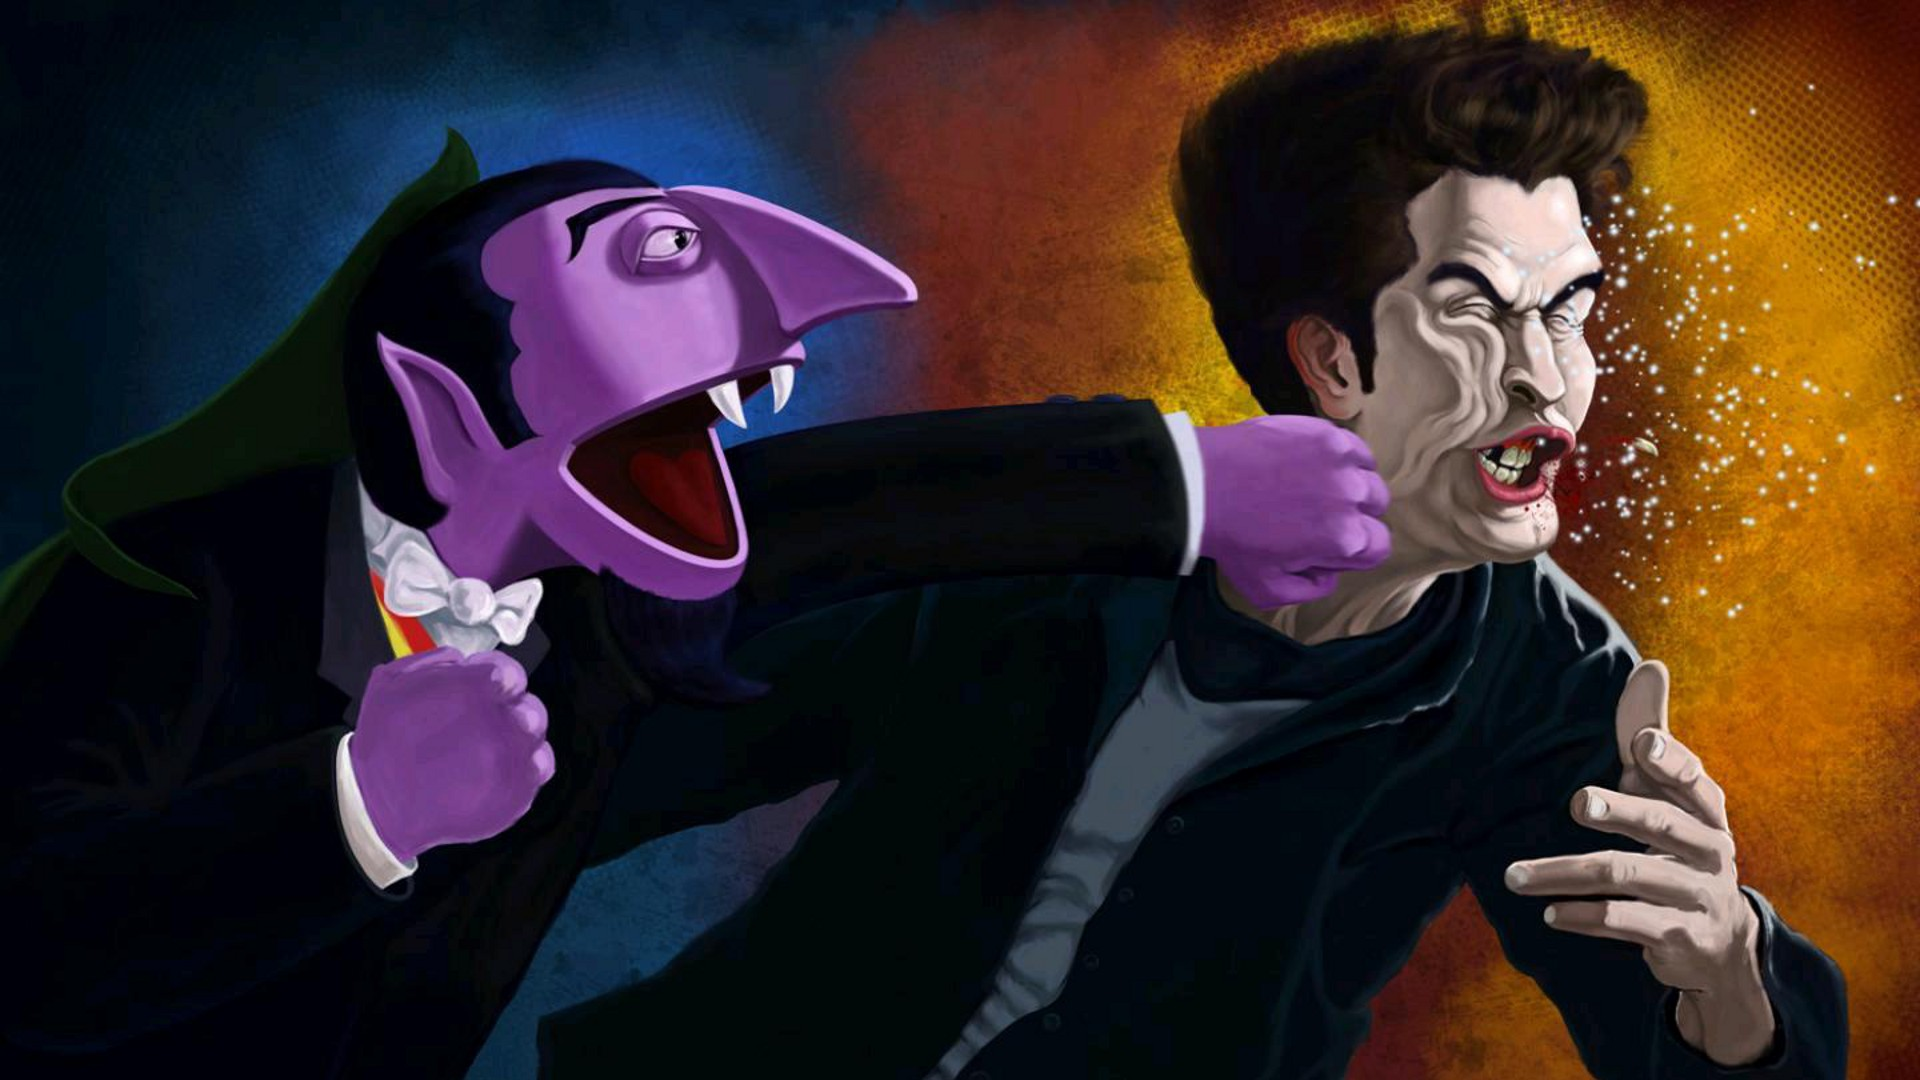 Humor - Mocking  - The Count - Sesame Street - Edward Cullen - Punch Wallpaper